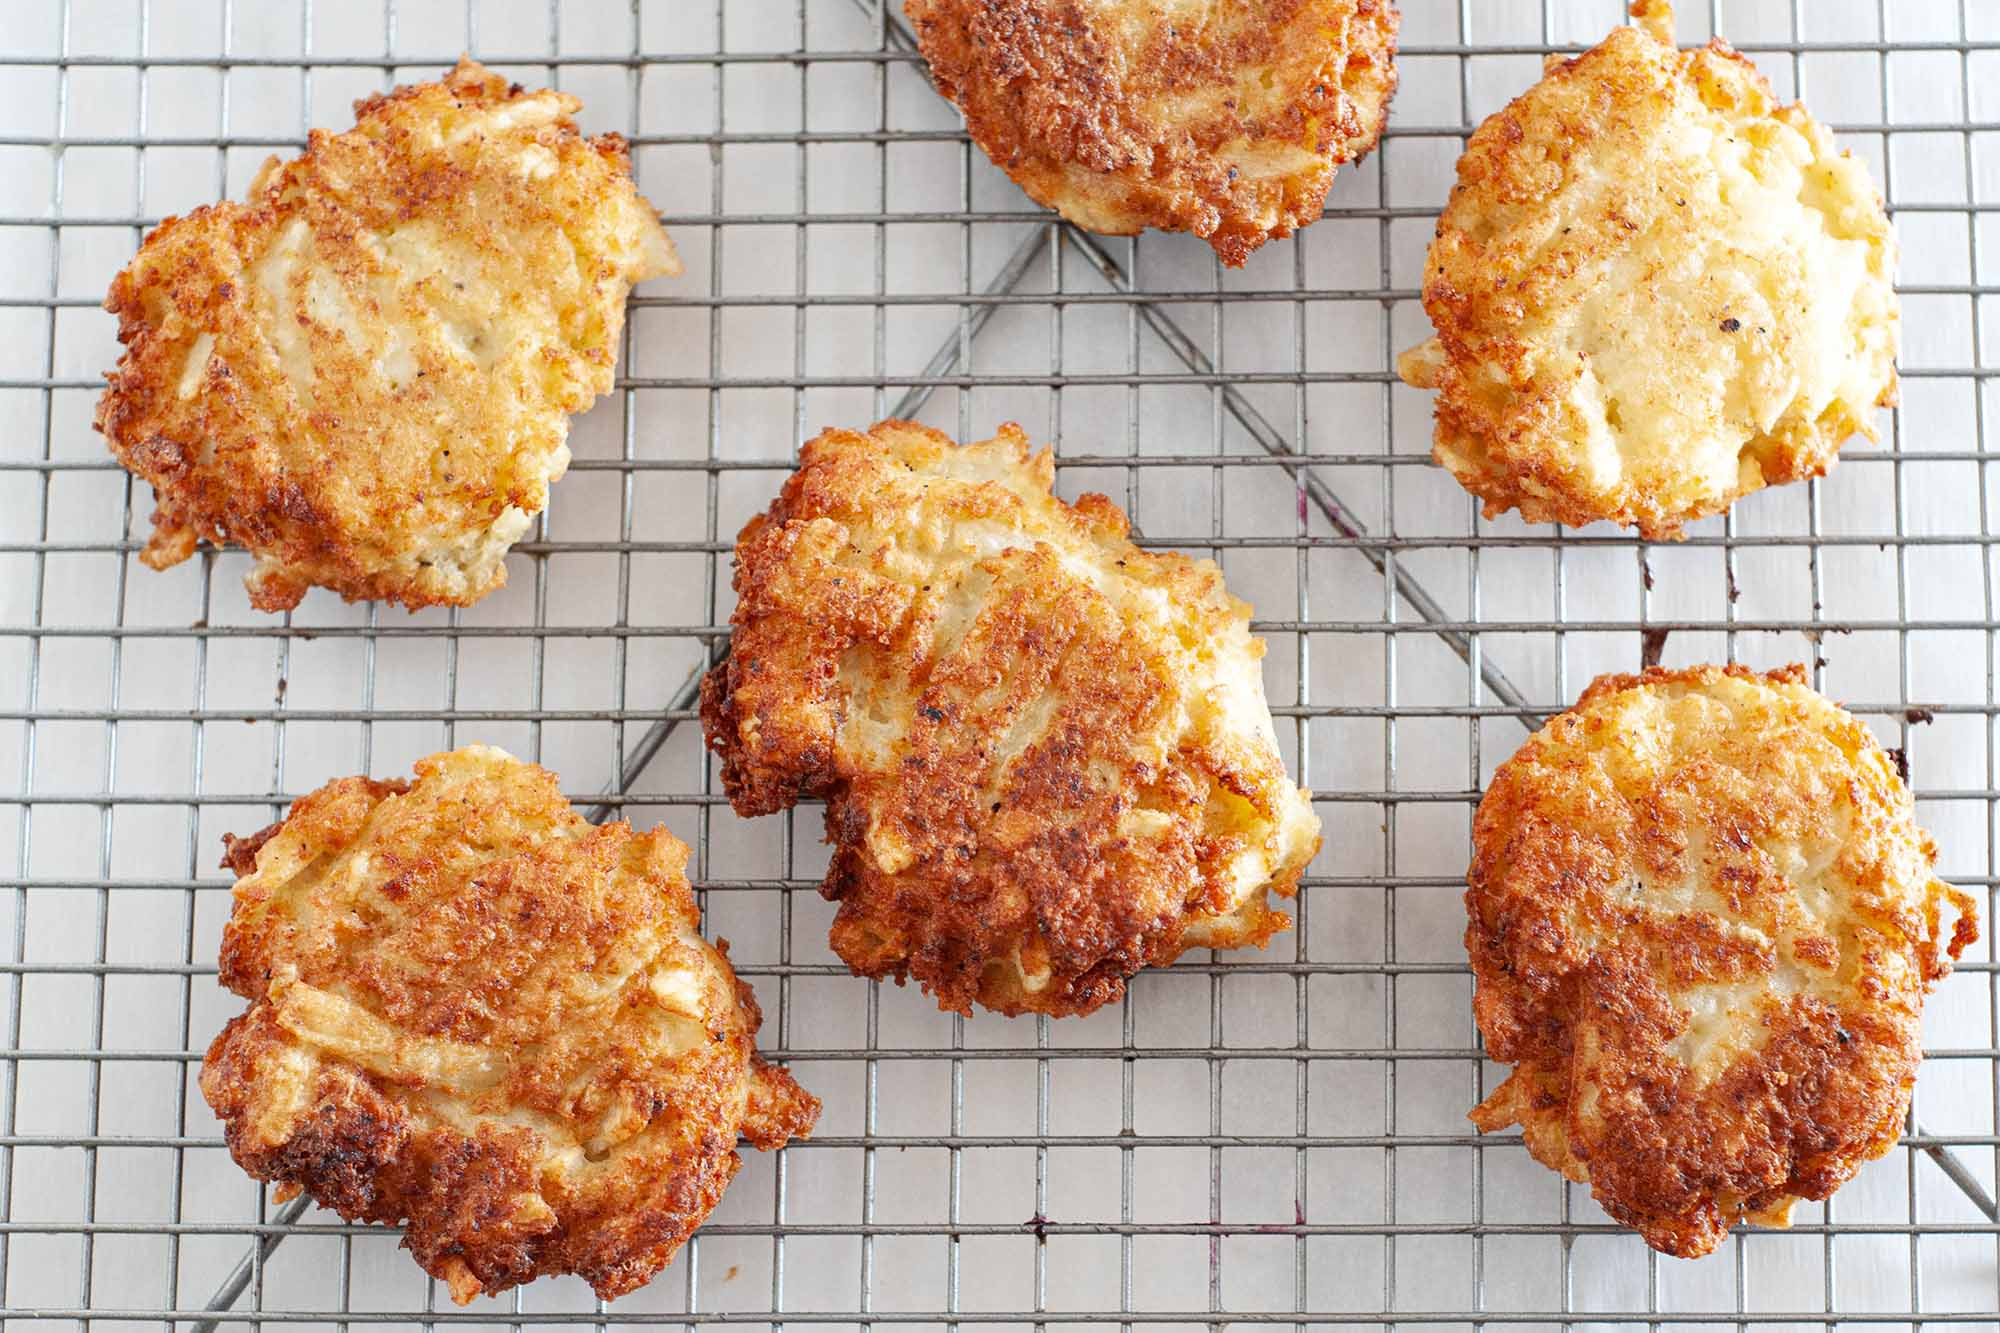 Fried potato latkes on a cooling rack